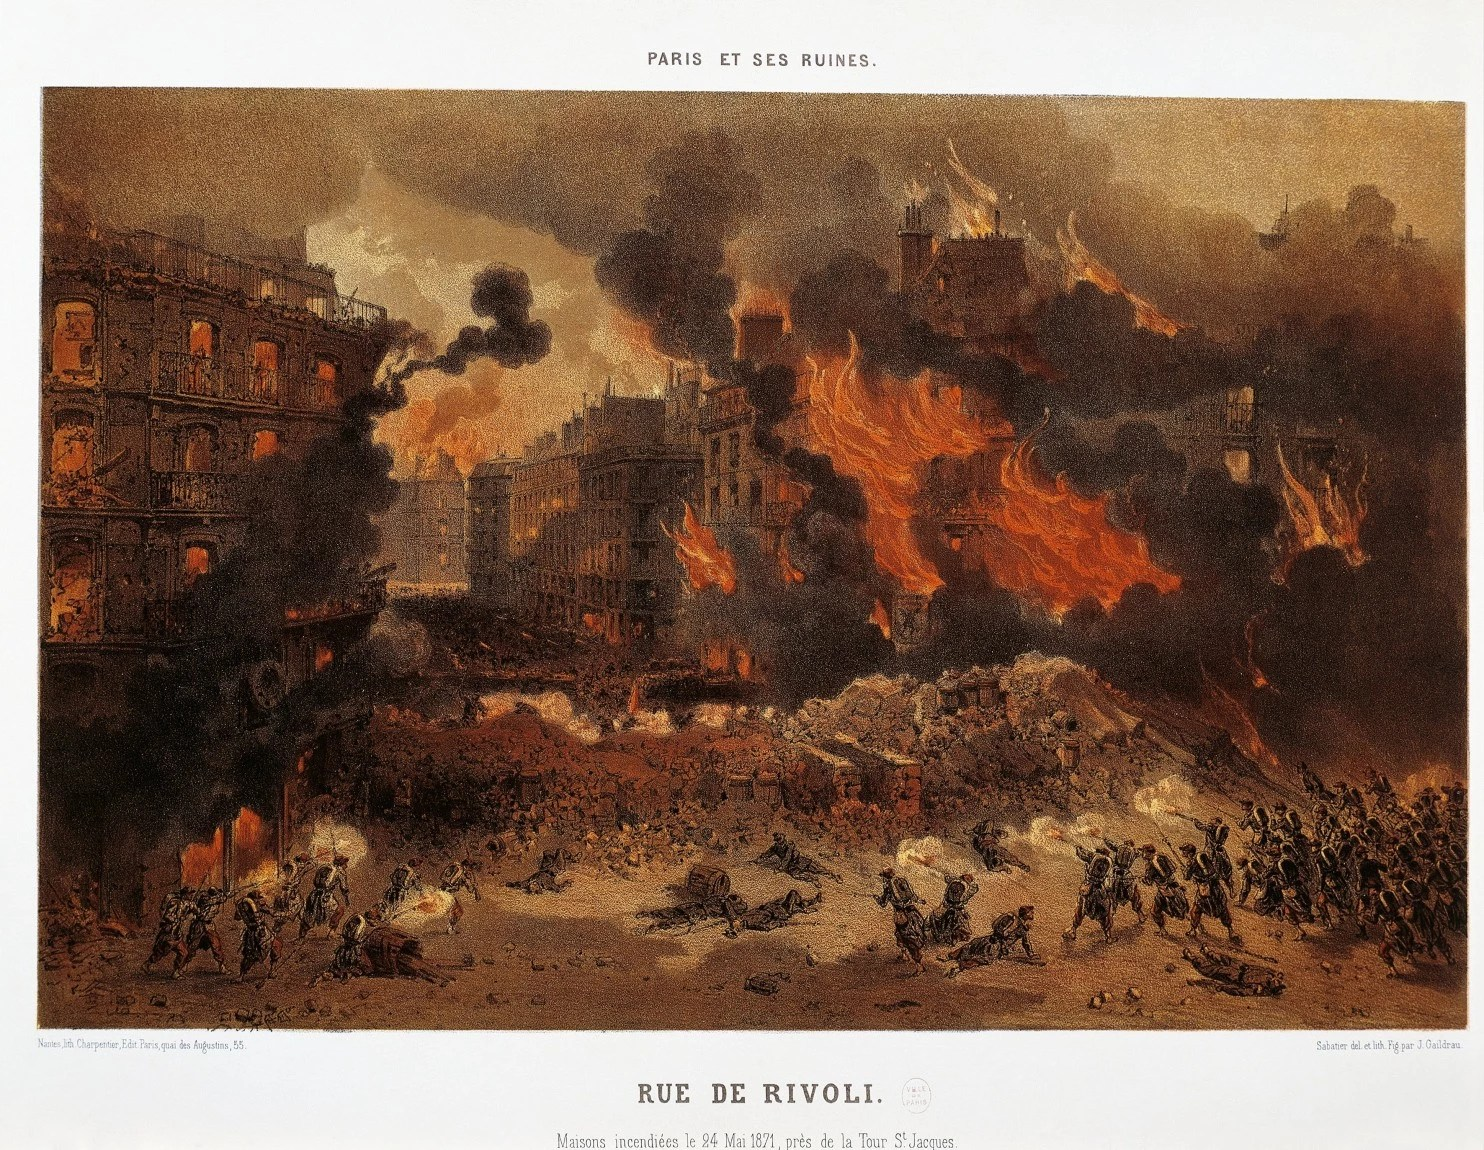 The Massacre: The Life and Death of the Paris Commune by John Merriman